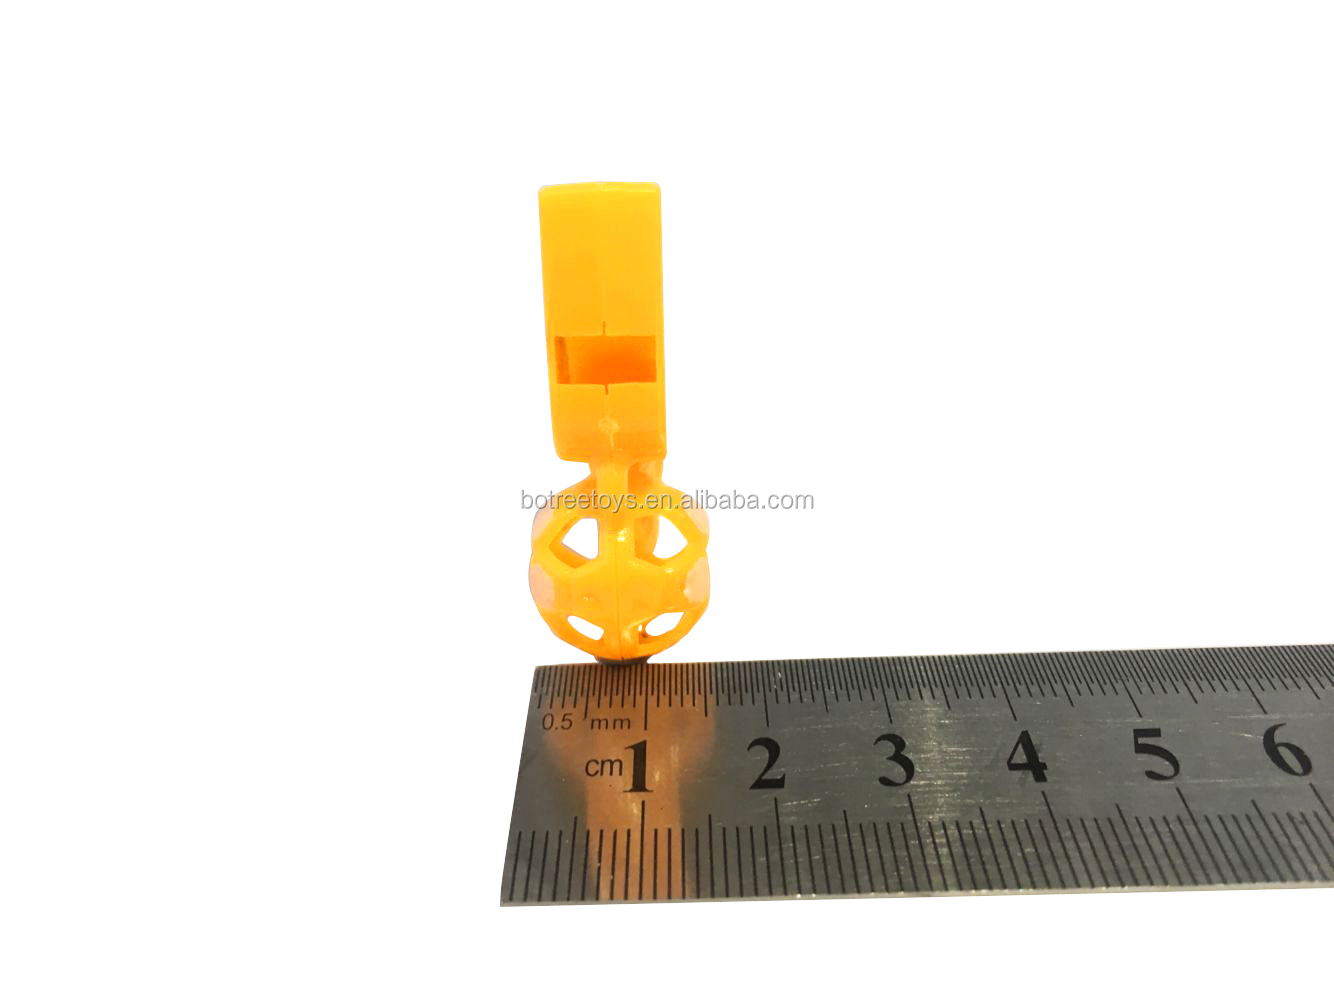 Promotional Sound Toy Plastic Football Shaped Whistle